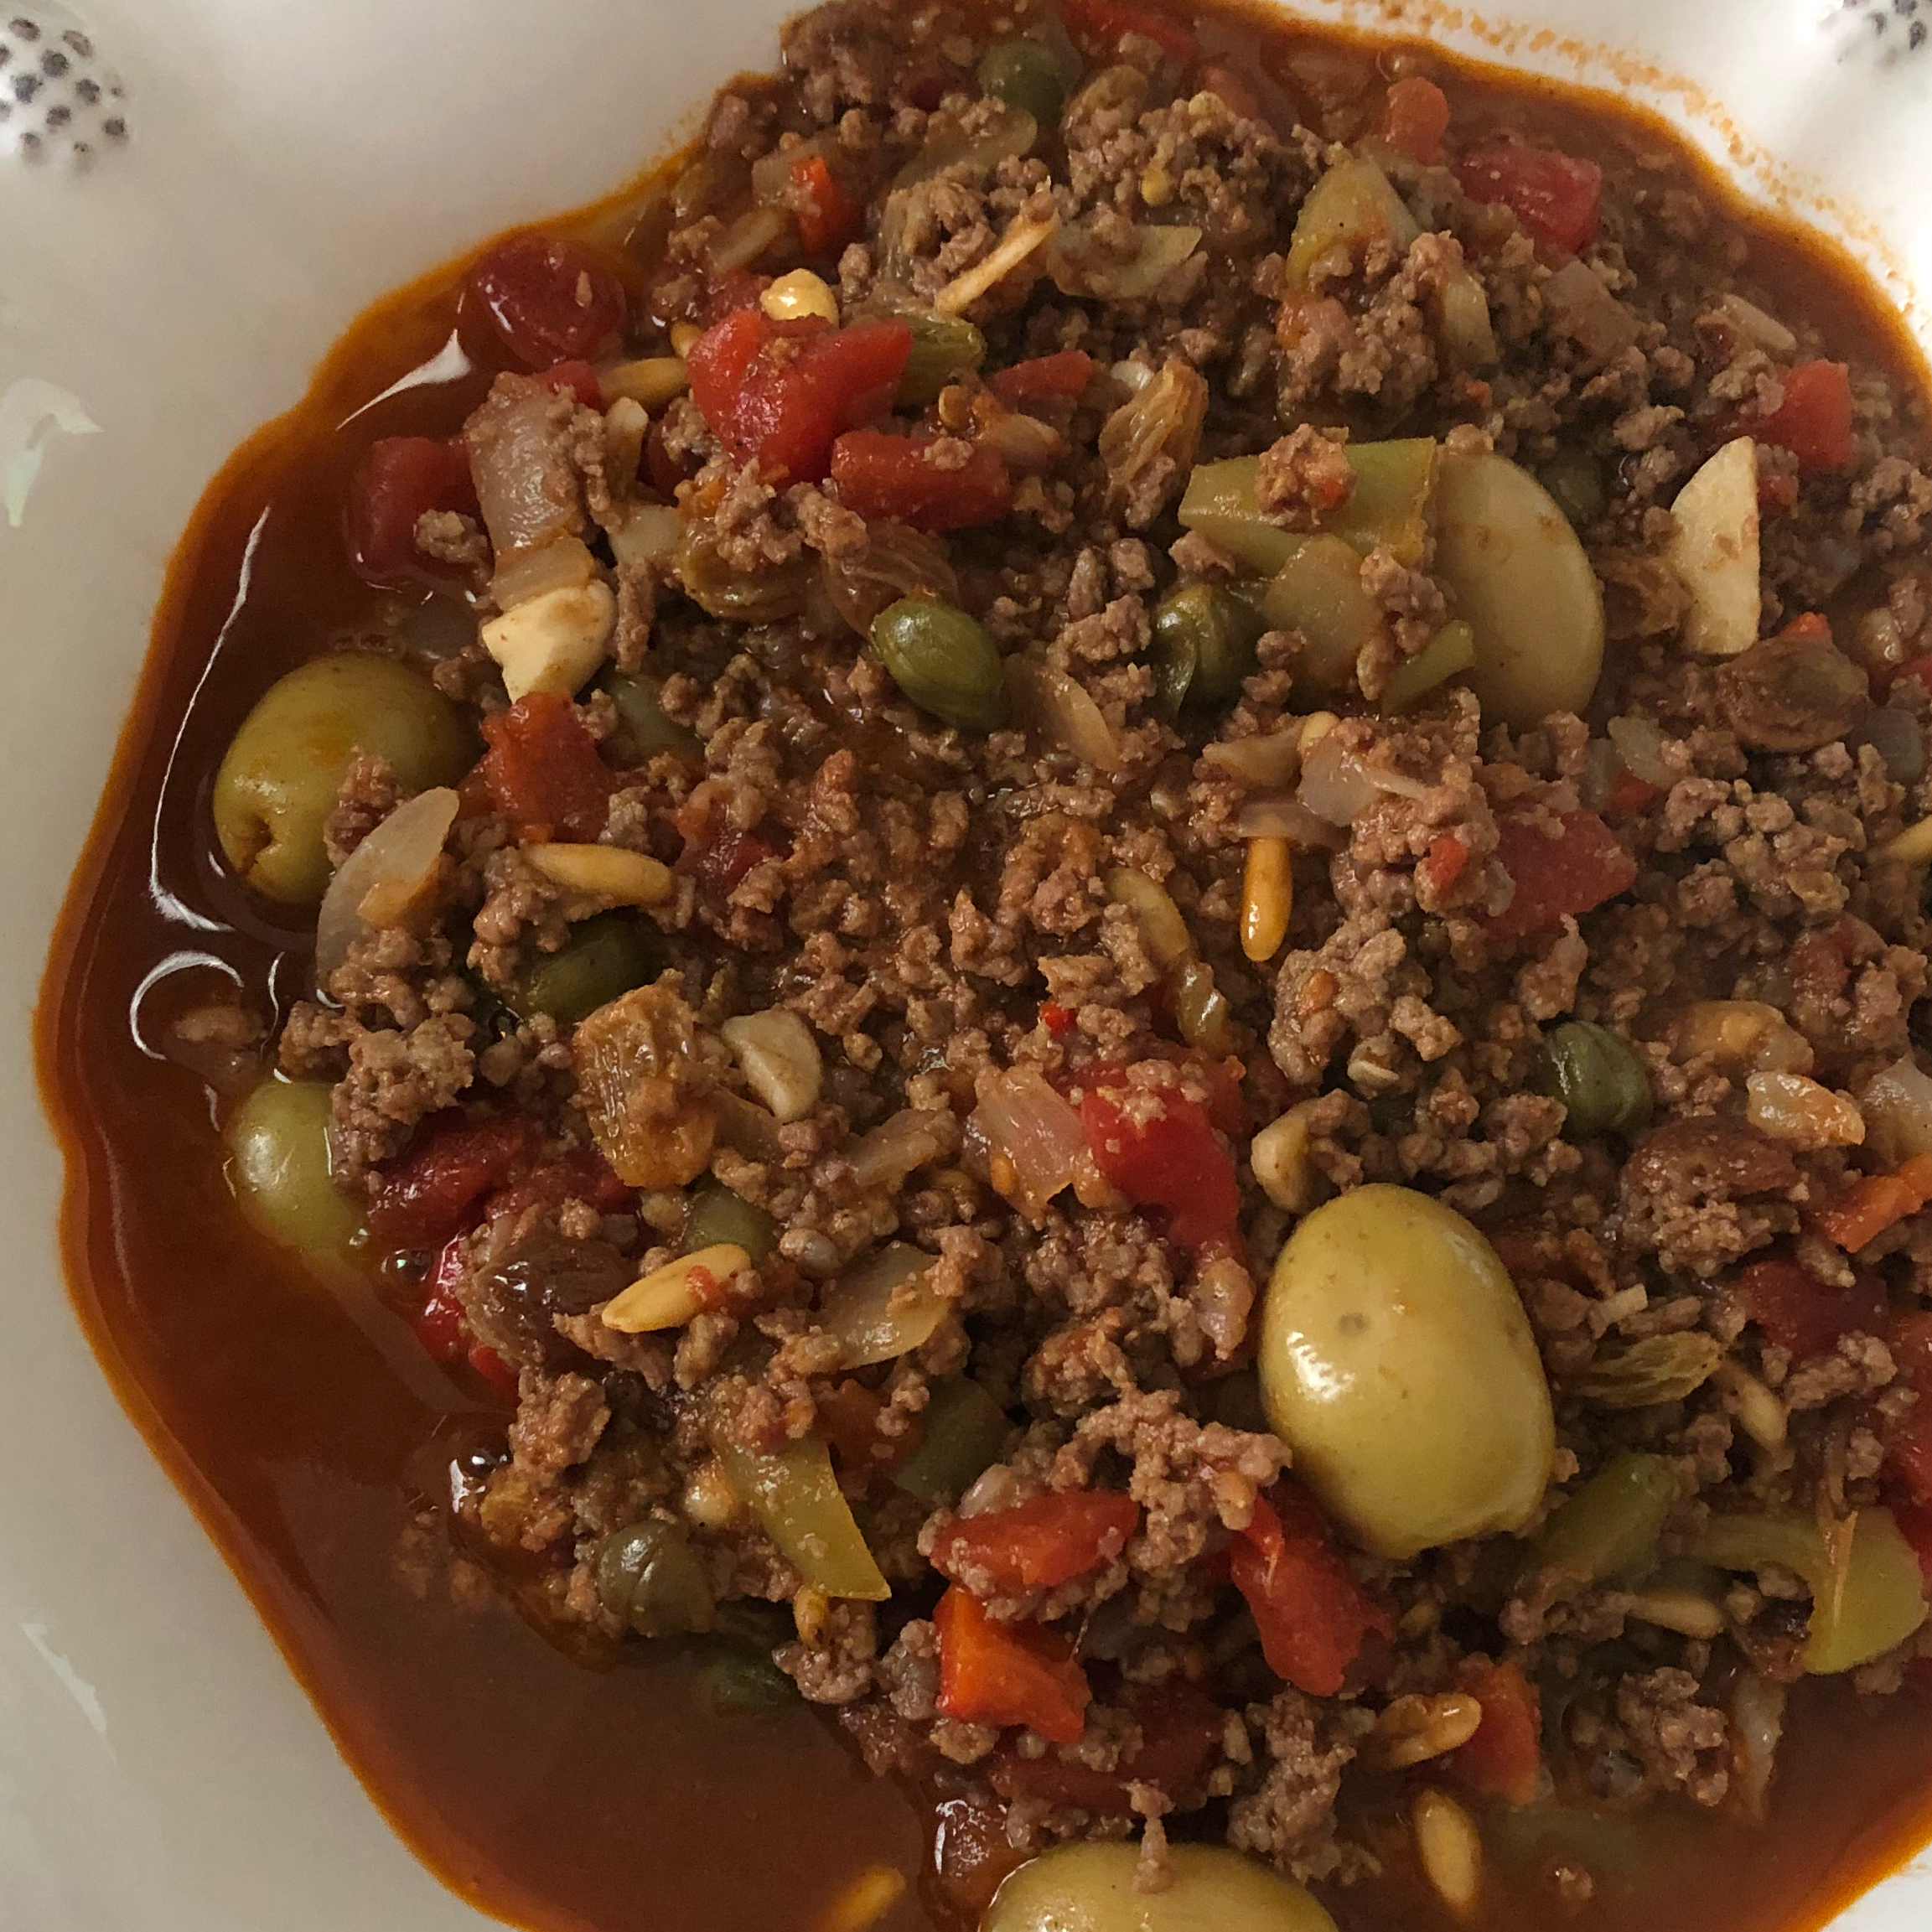 "Chorizo sausage and ground beef are browned, and then simmered with tomatoes and spices. Serve like chili or like a sloppy Joe over rolls or cornbread. ""YUM! My mouth just burst with all the complex flavors and textures,"" says DOREEN. ""Plan on making next time I have company over."""